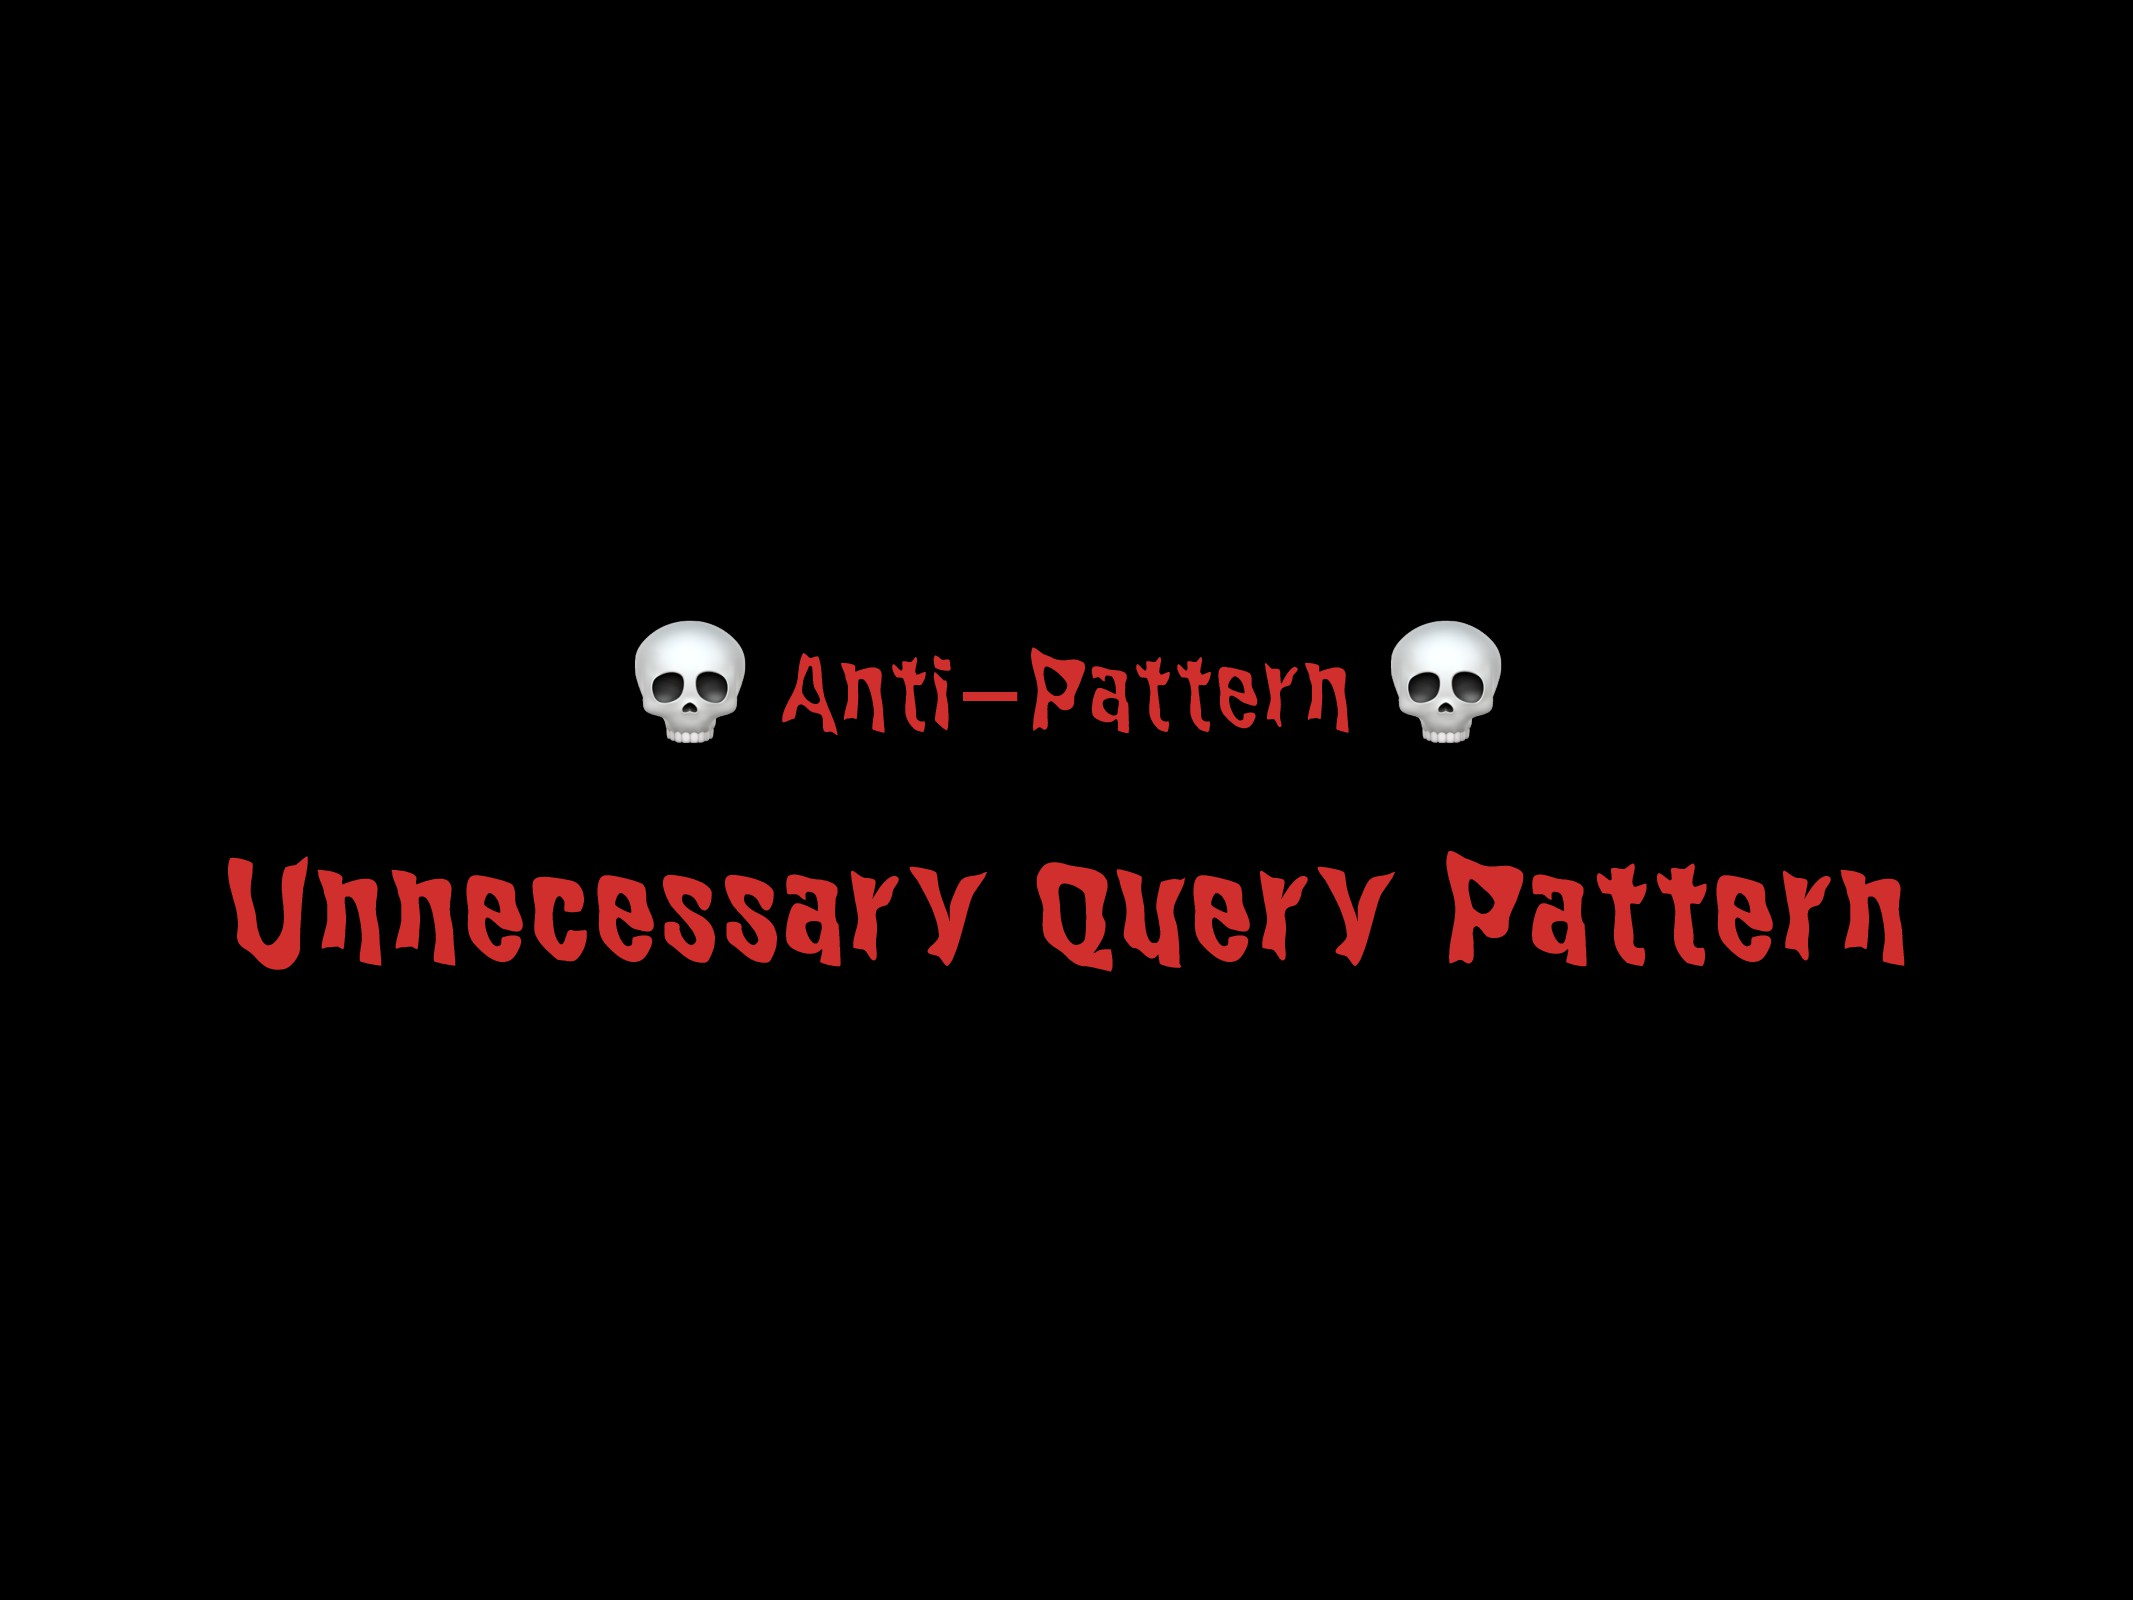 Unnecessary Query Pattern 49  Anti-Pattern